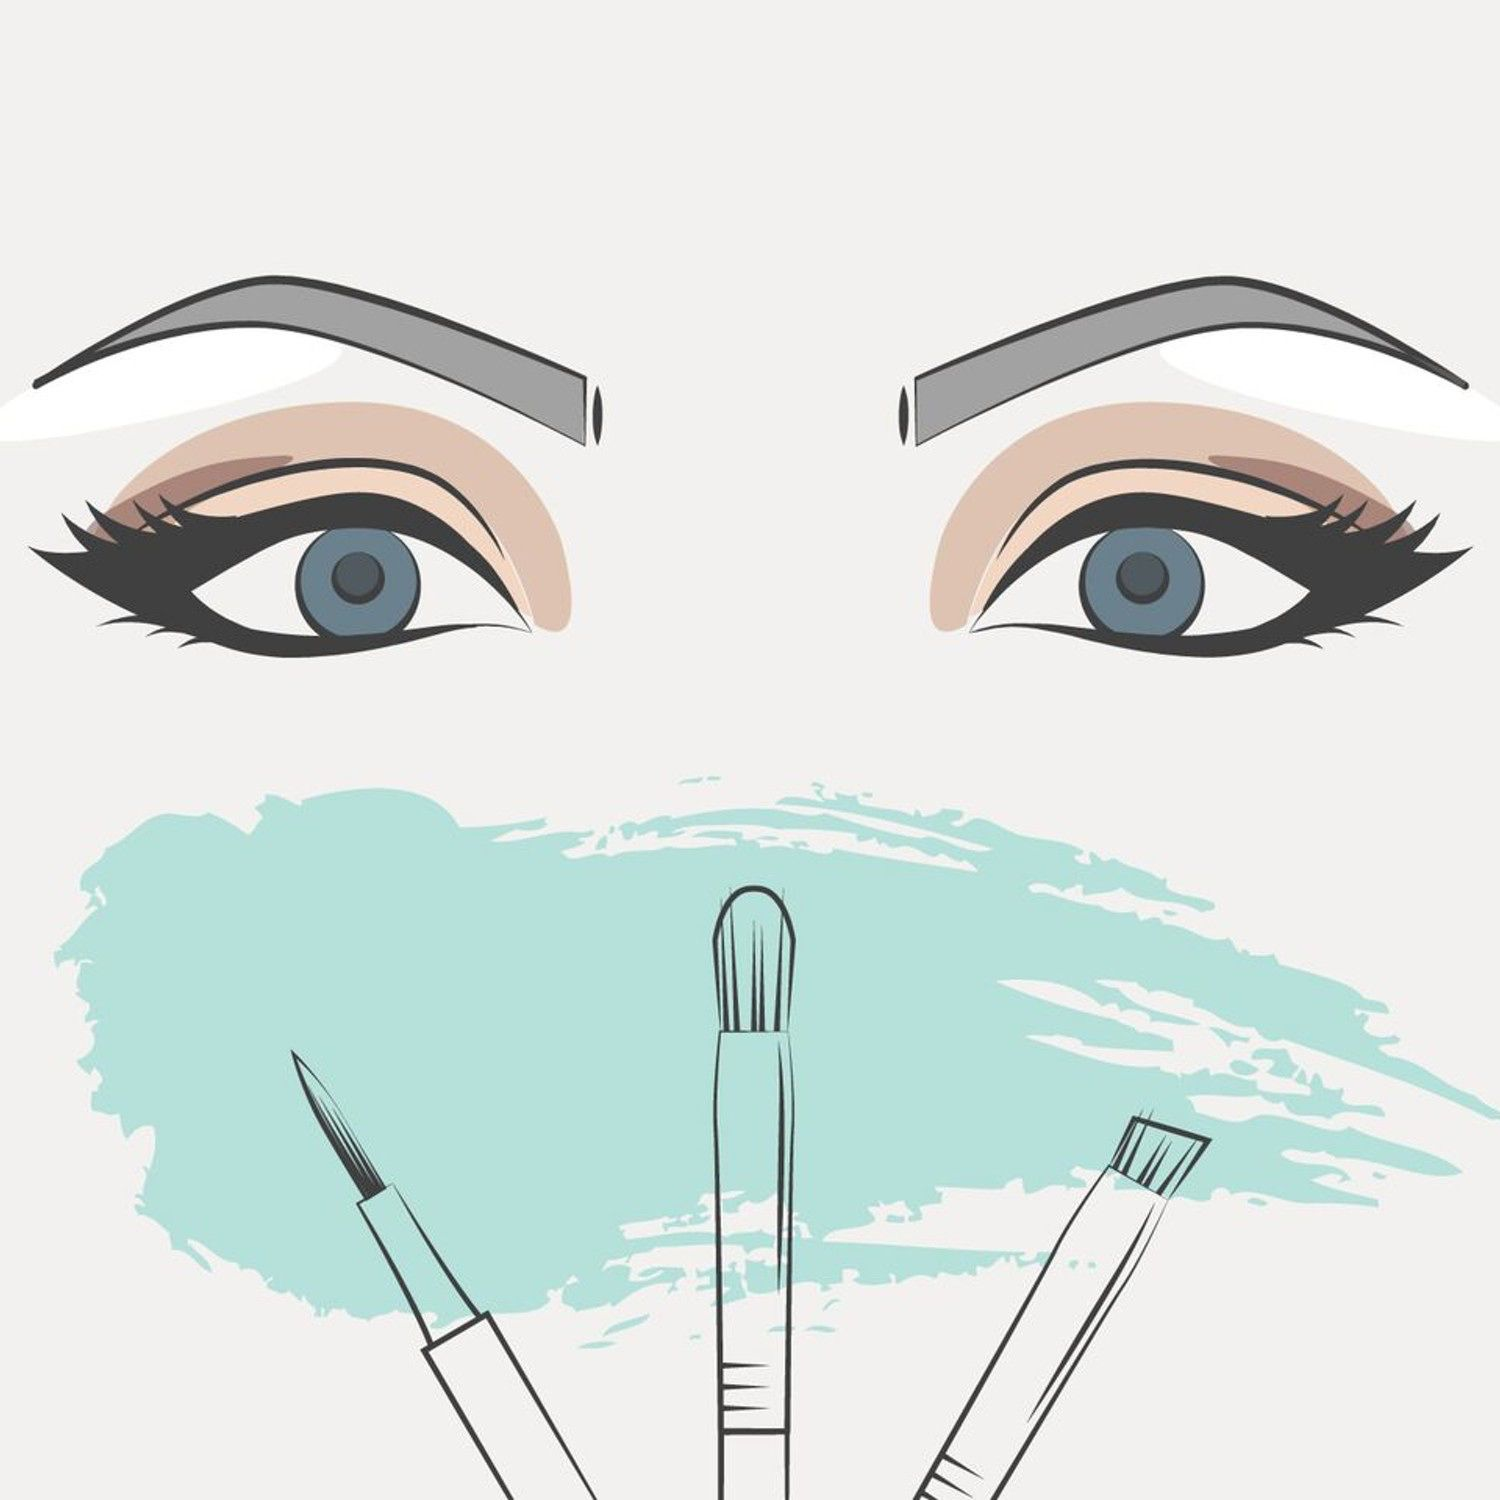 How to do a smoky eye thats best for the shape of your peepers how to do a smoky eye thats best for the shape of your peepers flowchart makeup tutorialsmakeup baditri Image collections